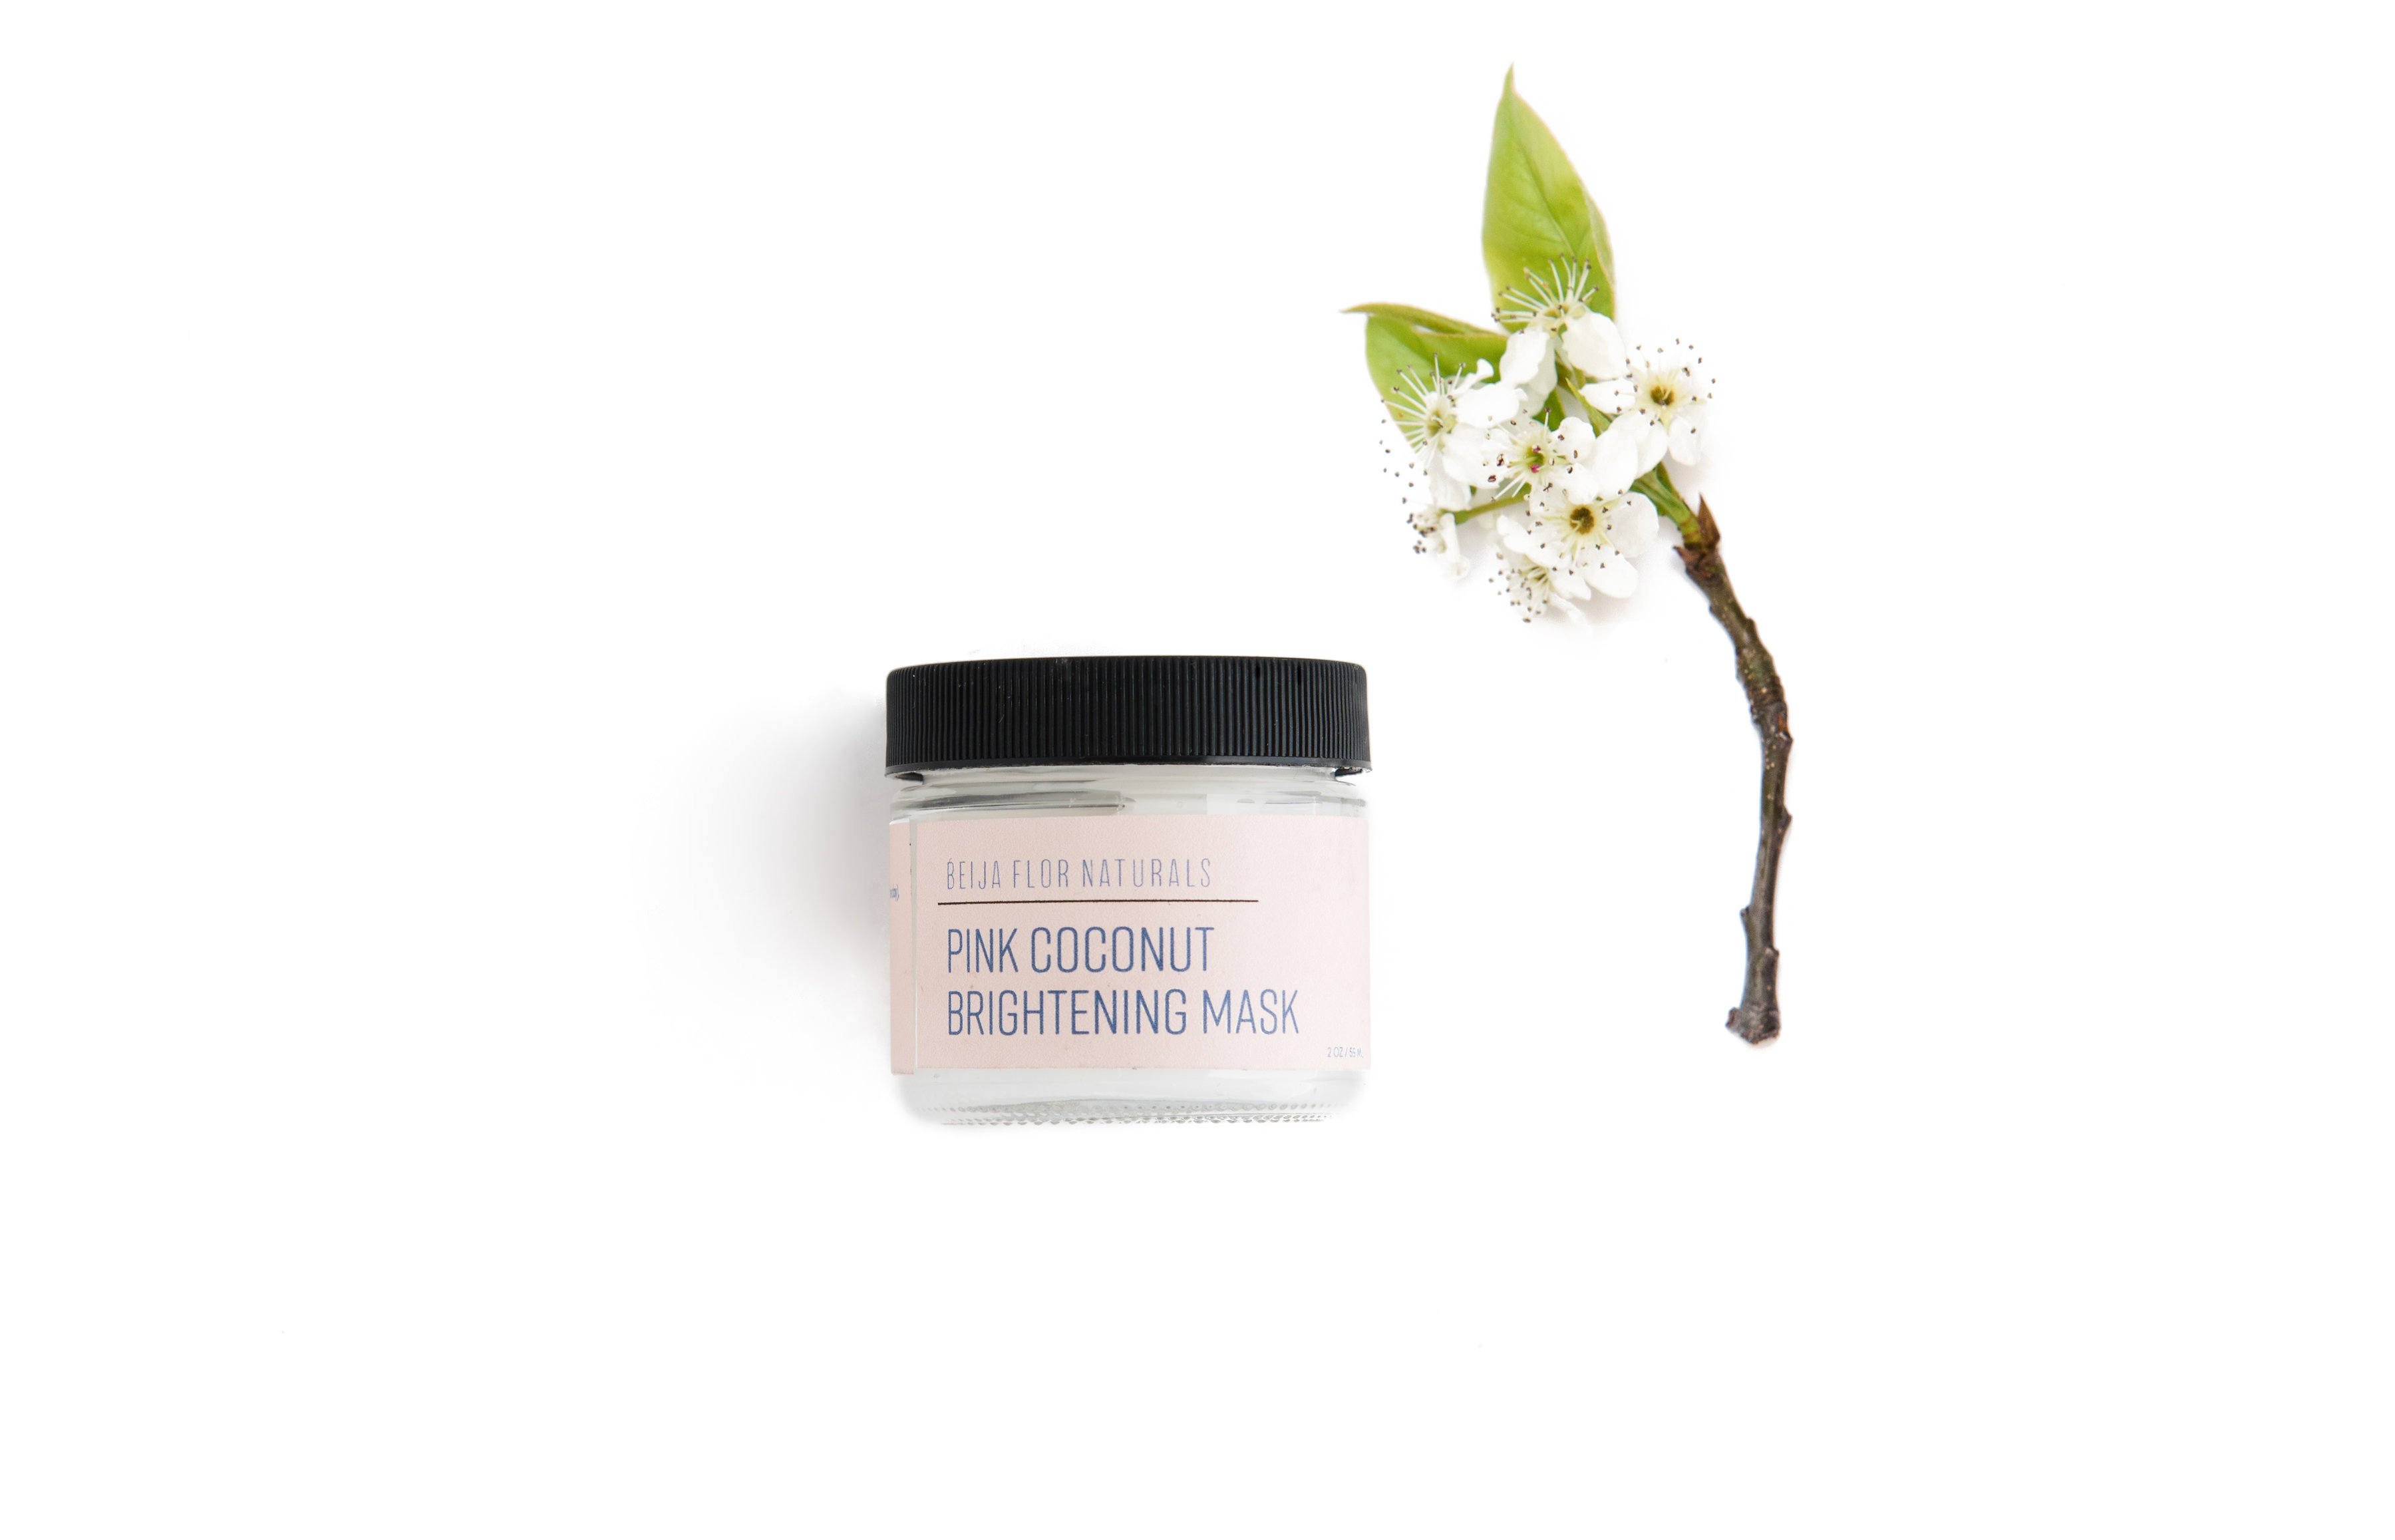 Pink Coconut Brightening Mask